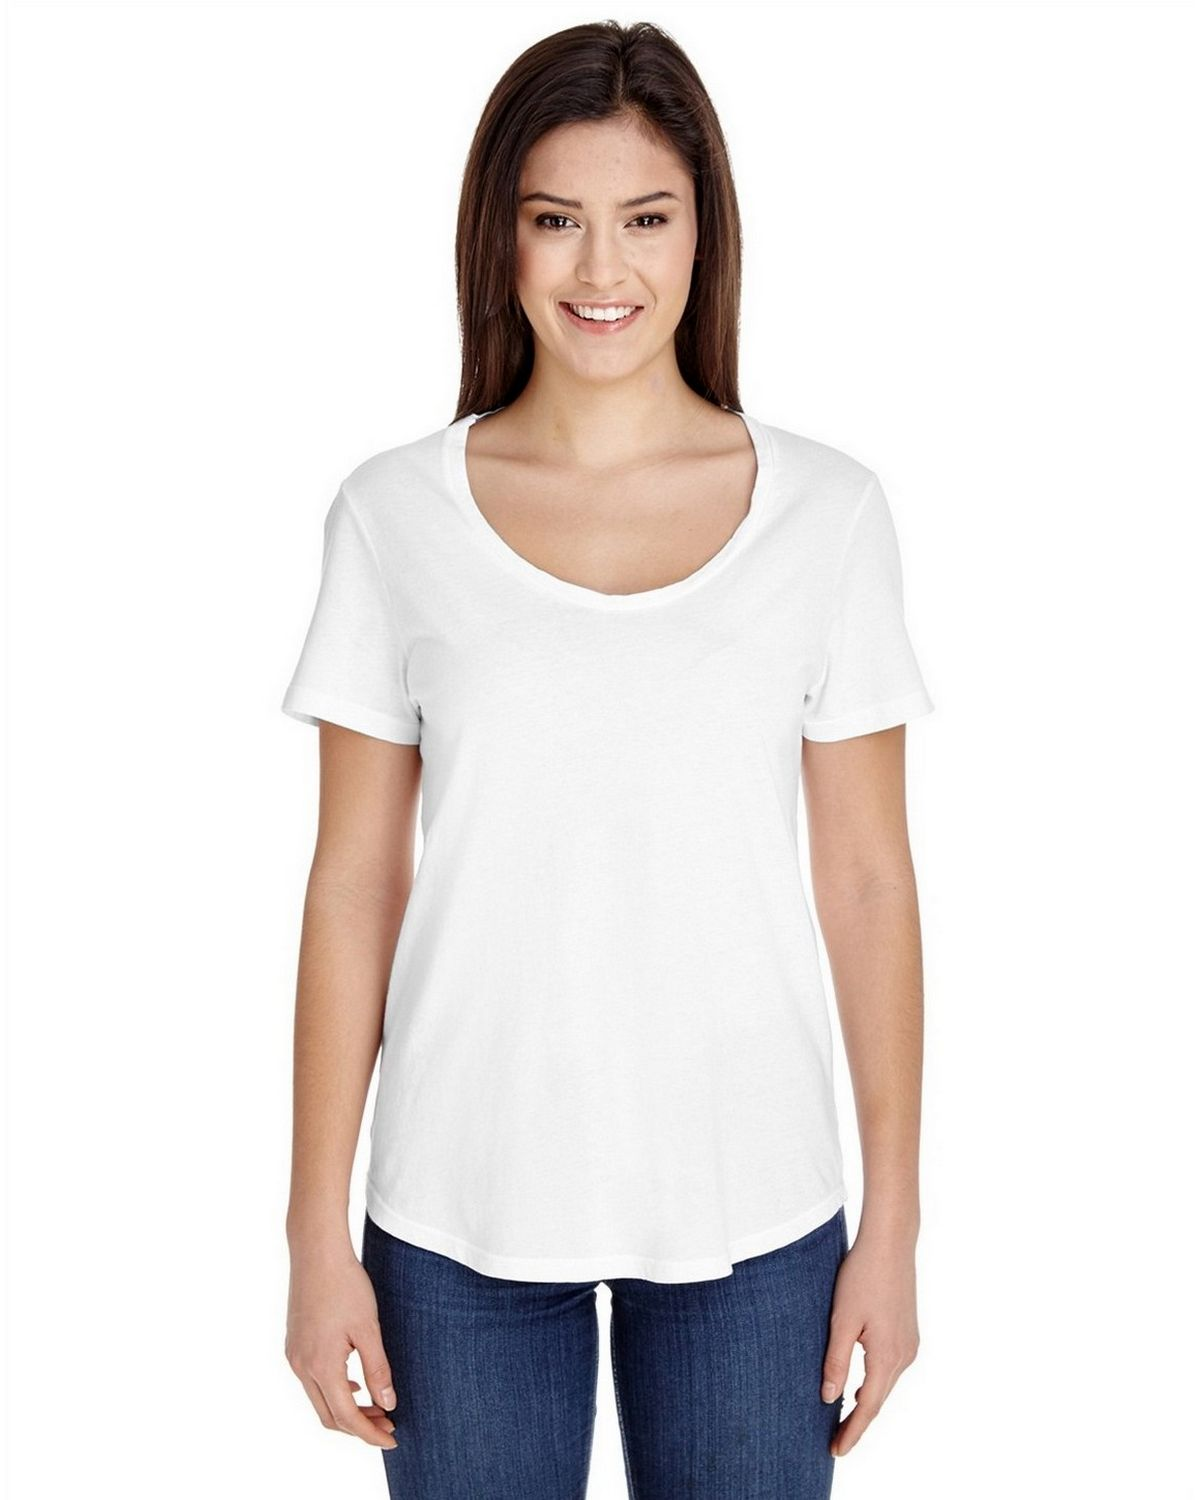 American Apparel RSA6320 Women's Ultra Wash T-Shirt